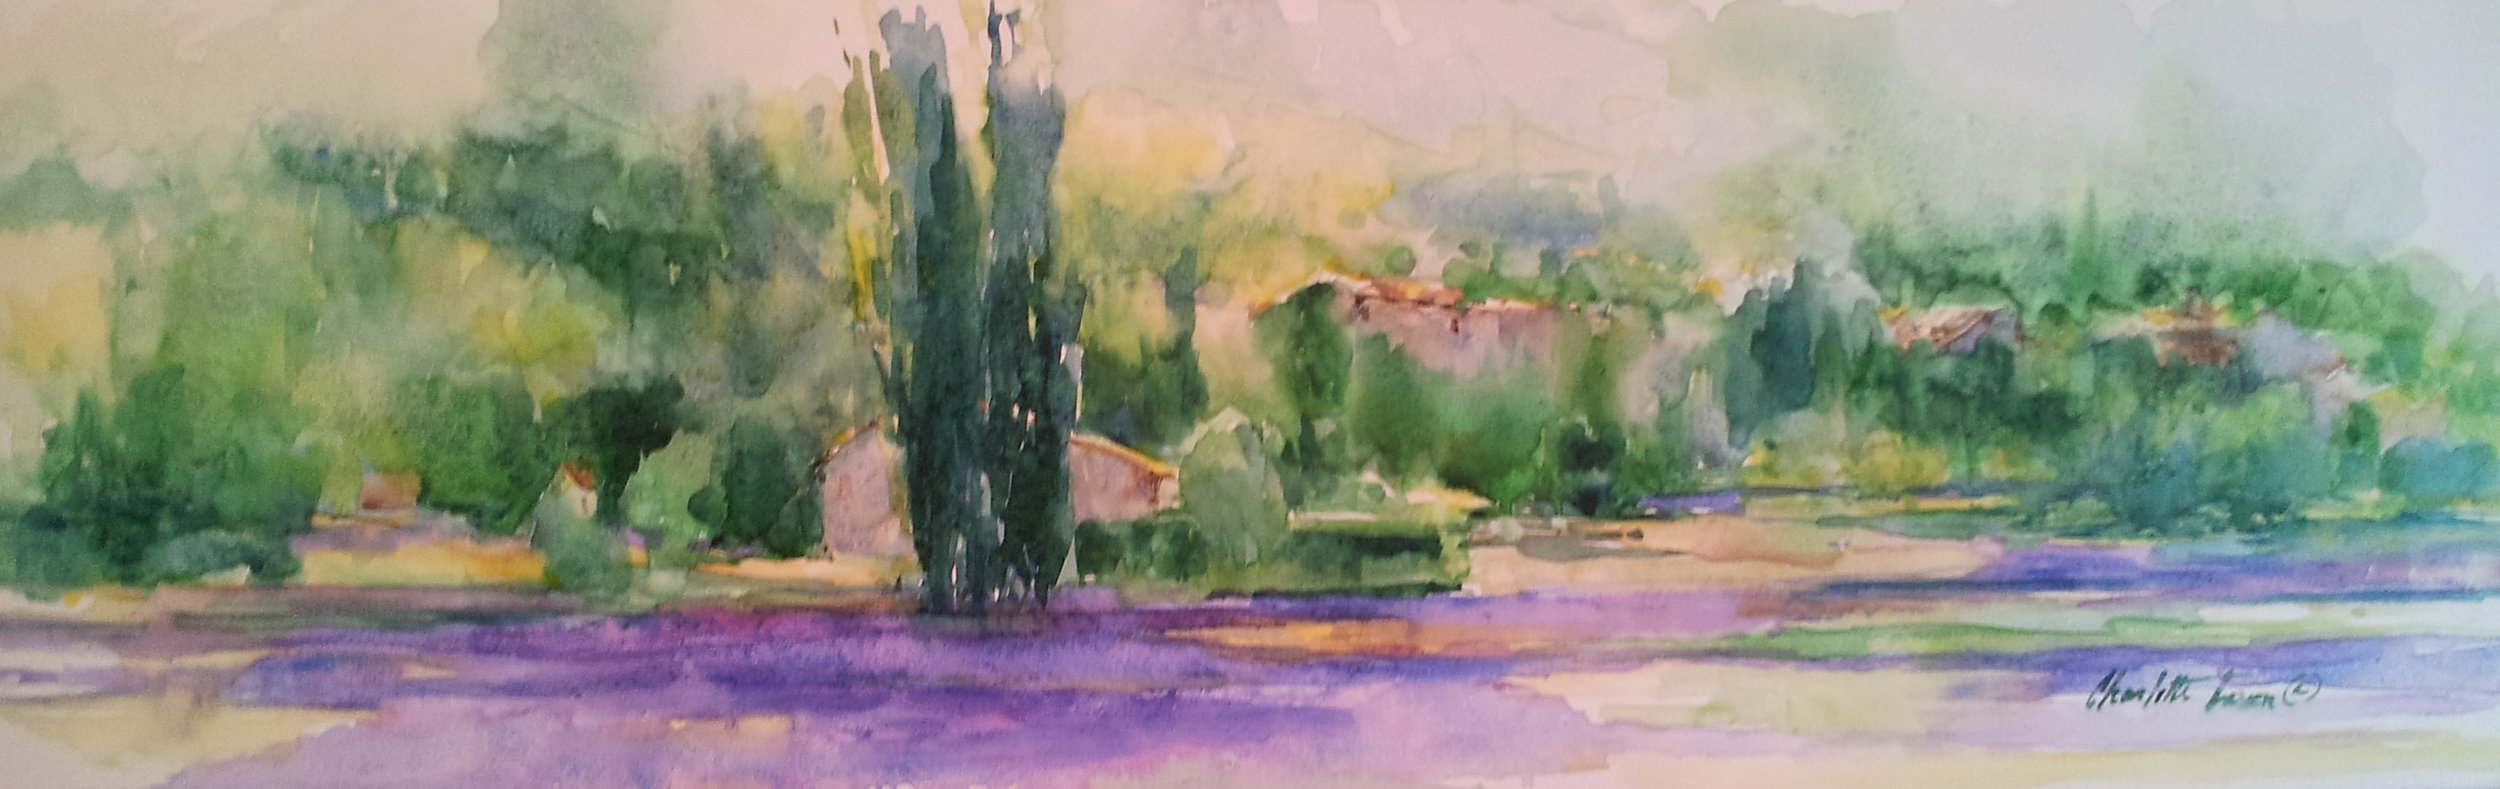 "Lavender Country  12"" x 36"" watercolor on canvas"